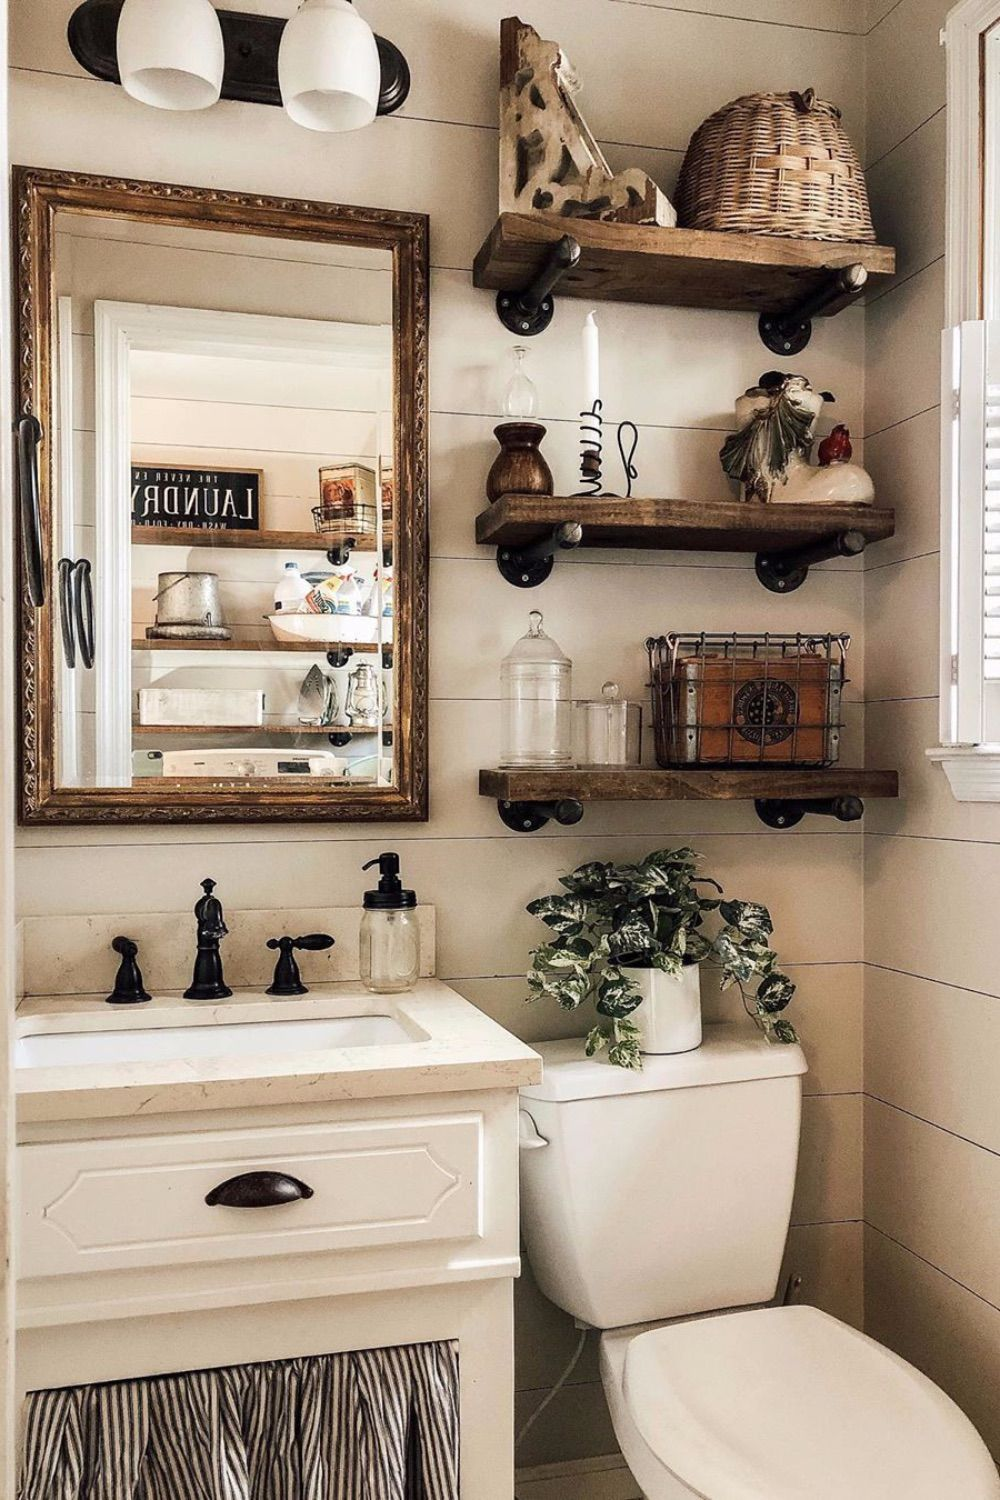 Guest Bathroom Ideas That Are Easy To Do Swankyden Com 2020 In 2020 Guest Bathrooms Large Bathroom Rugs Affordable Home Decor